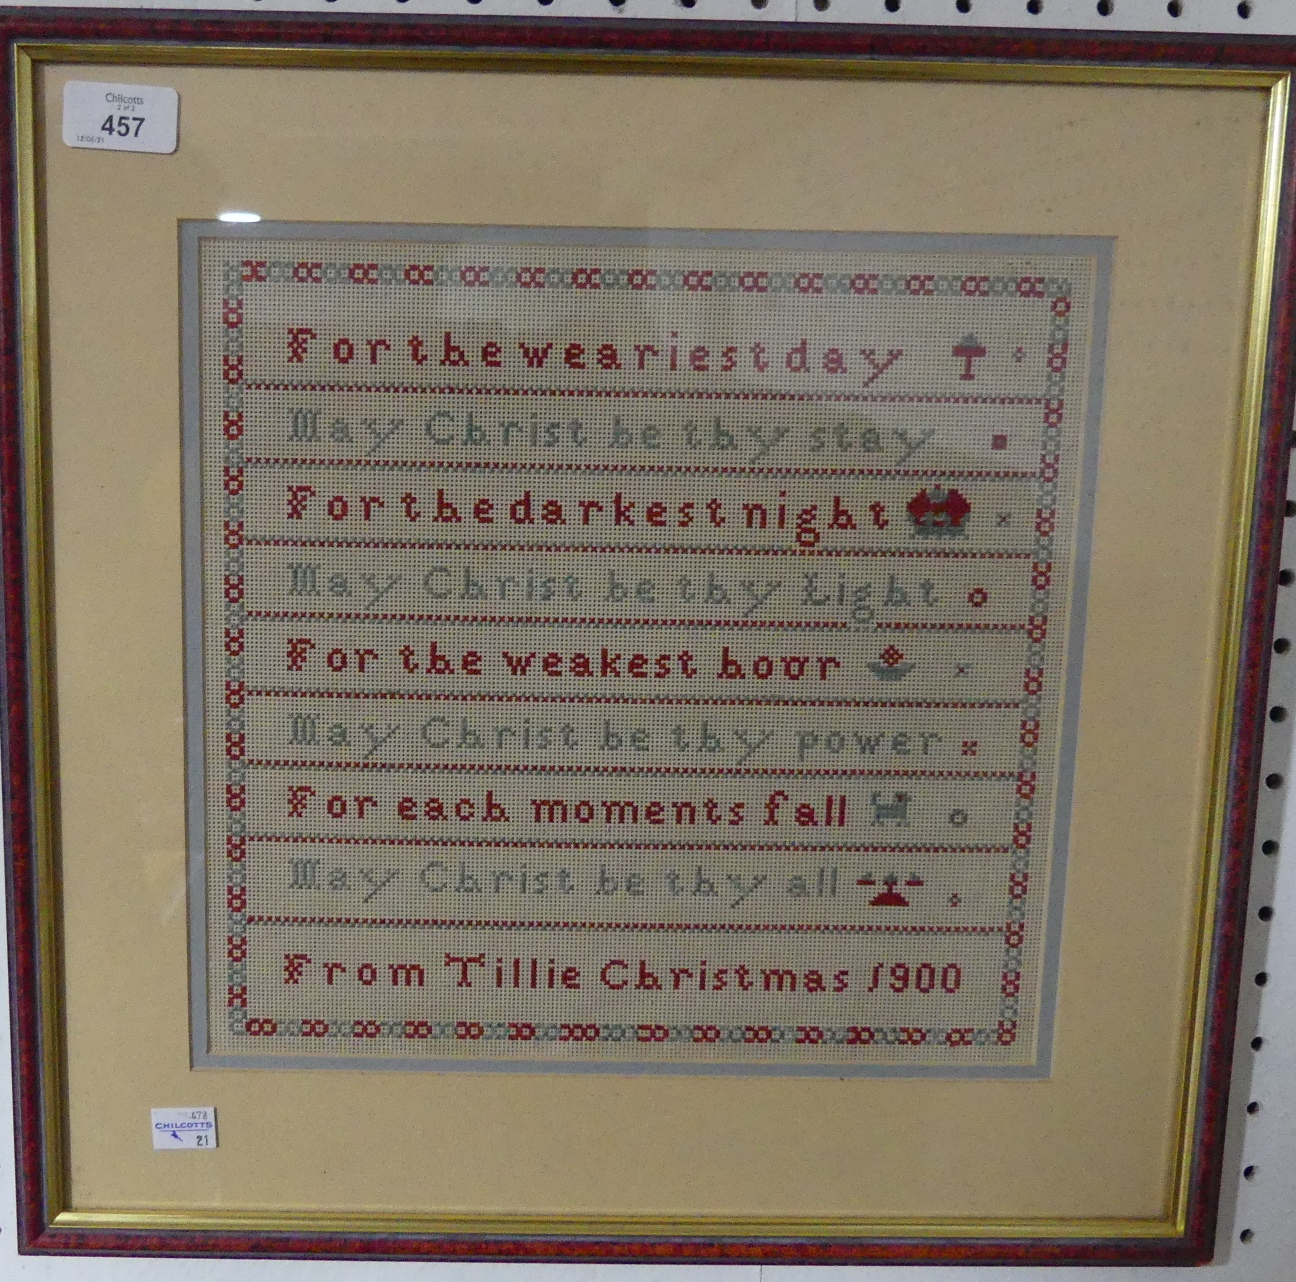 A framed and glazed commemorative Embroidery, commemorating forty years since the end of WWII, - Image 2 of 2